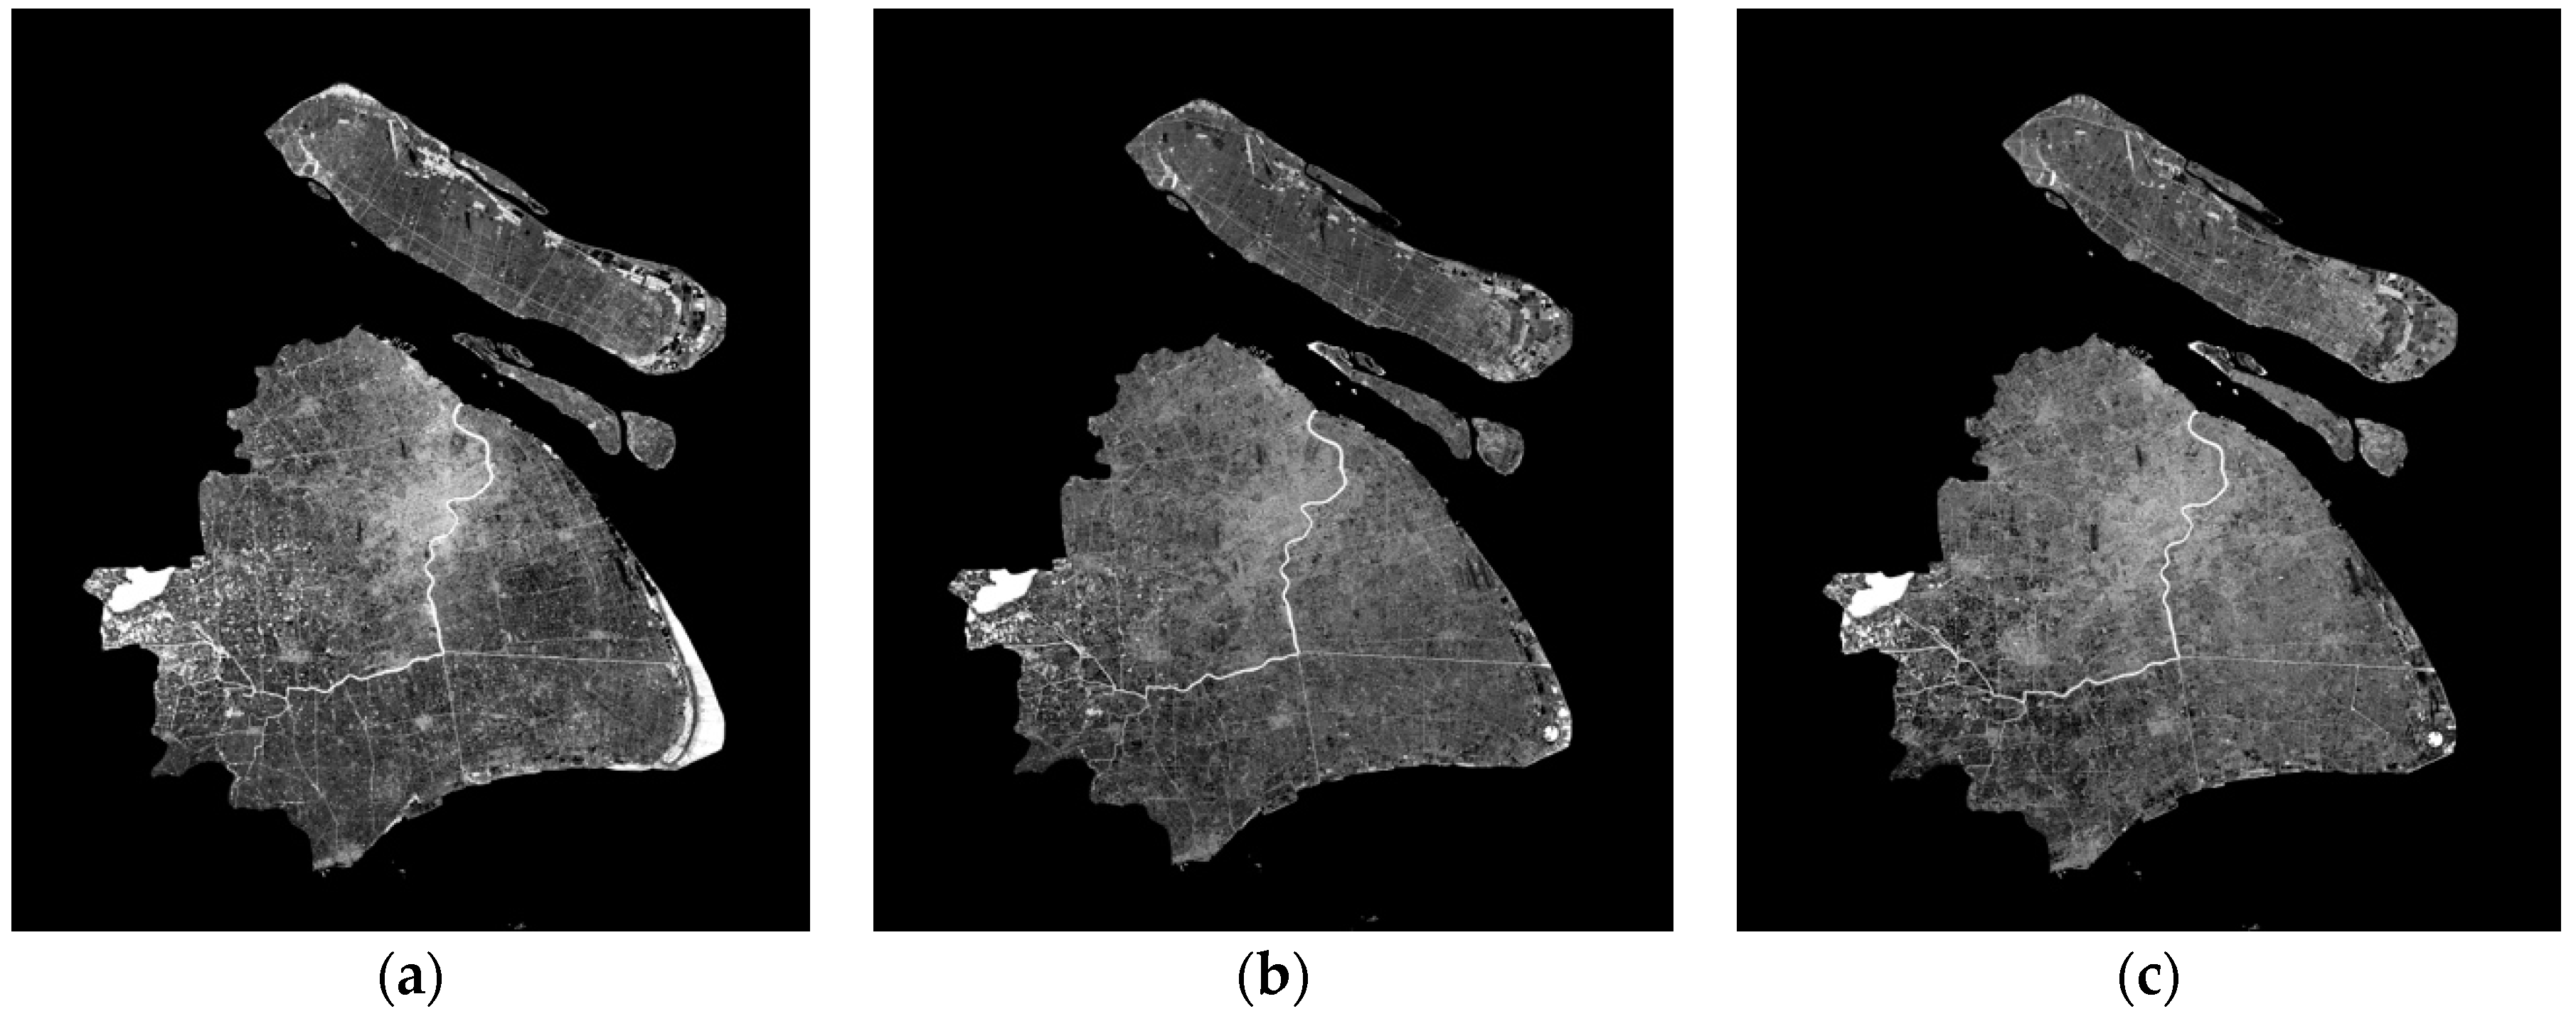 an analysis of the presence of an urban heat island in indianapolis Sneezing and wheezing:  where the urban heat island effect boosts temperatures and ragweed thrives in the  both presence of ragweed and =1 ozone.